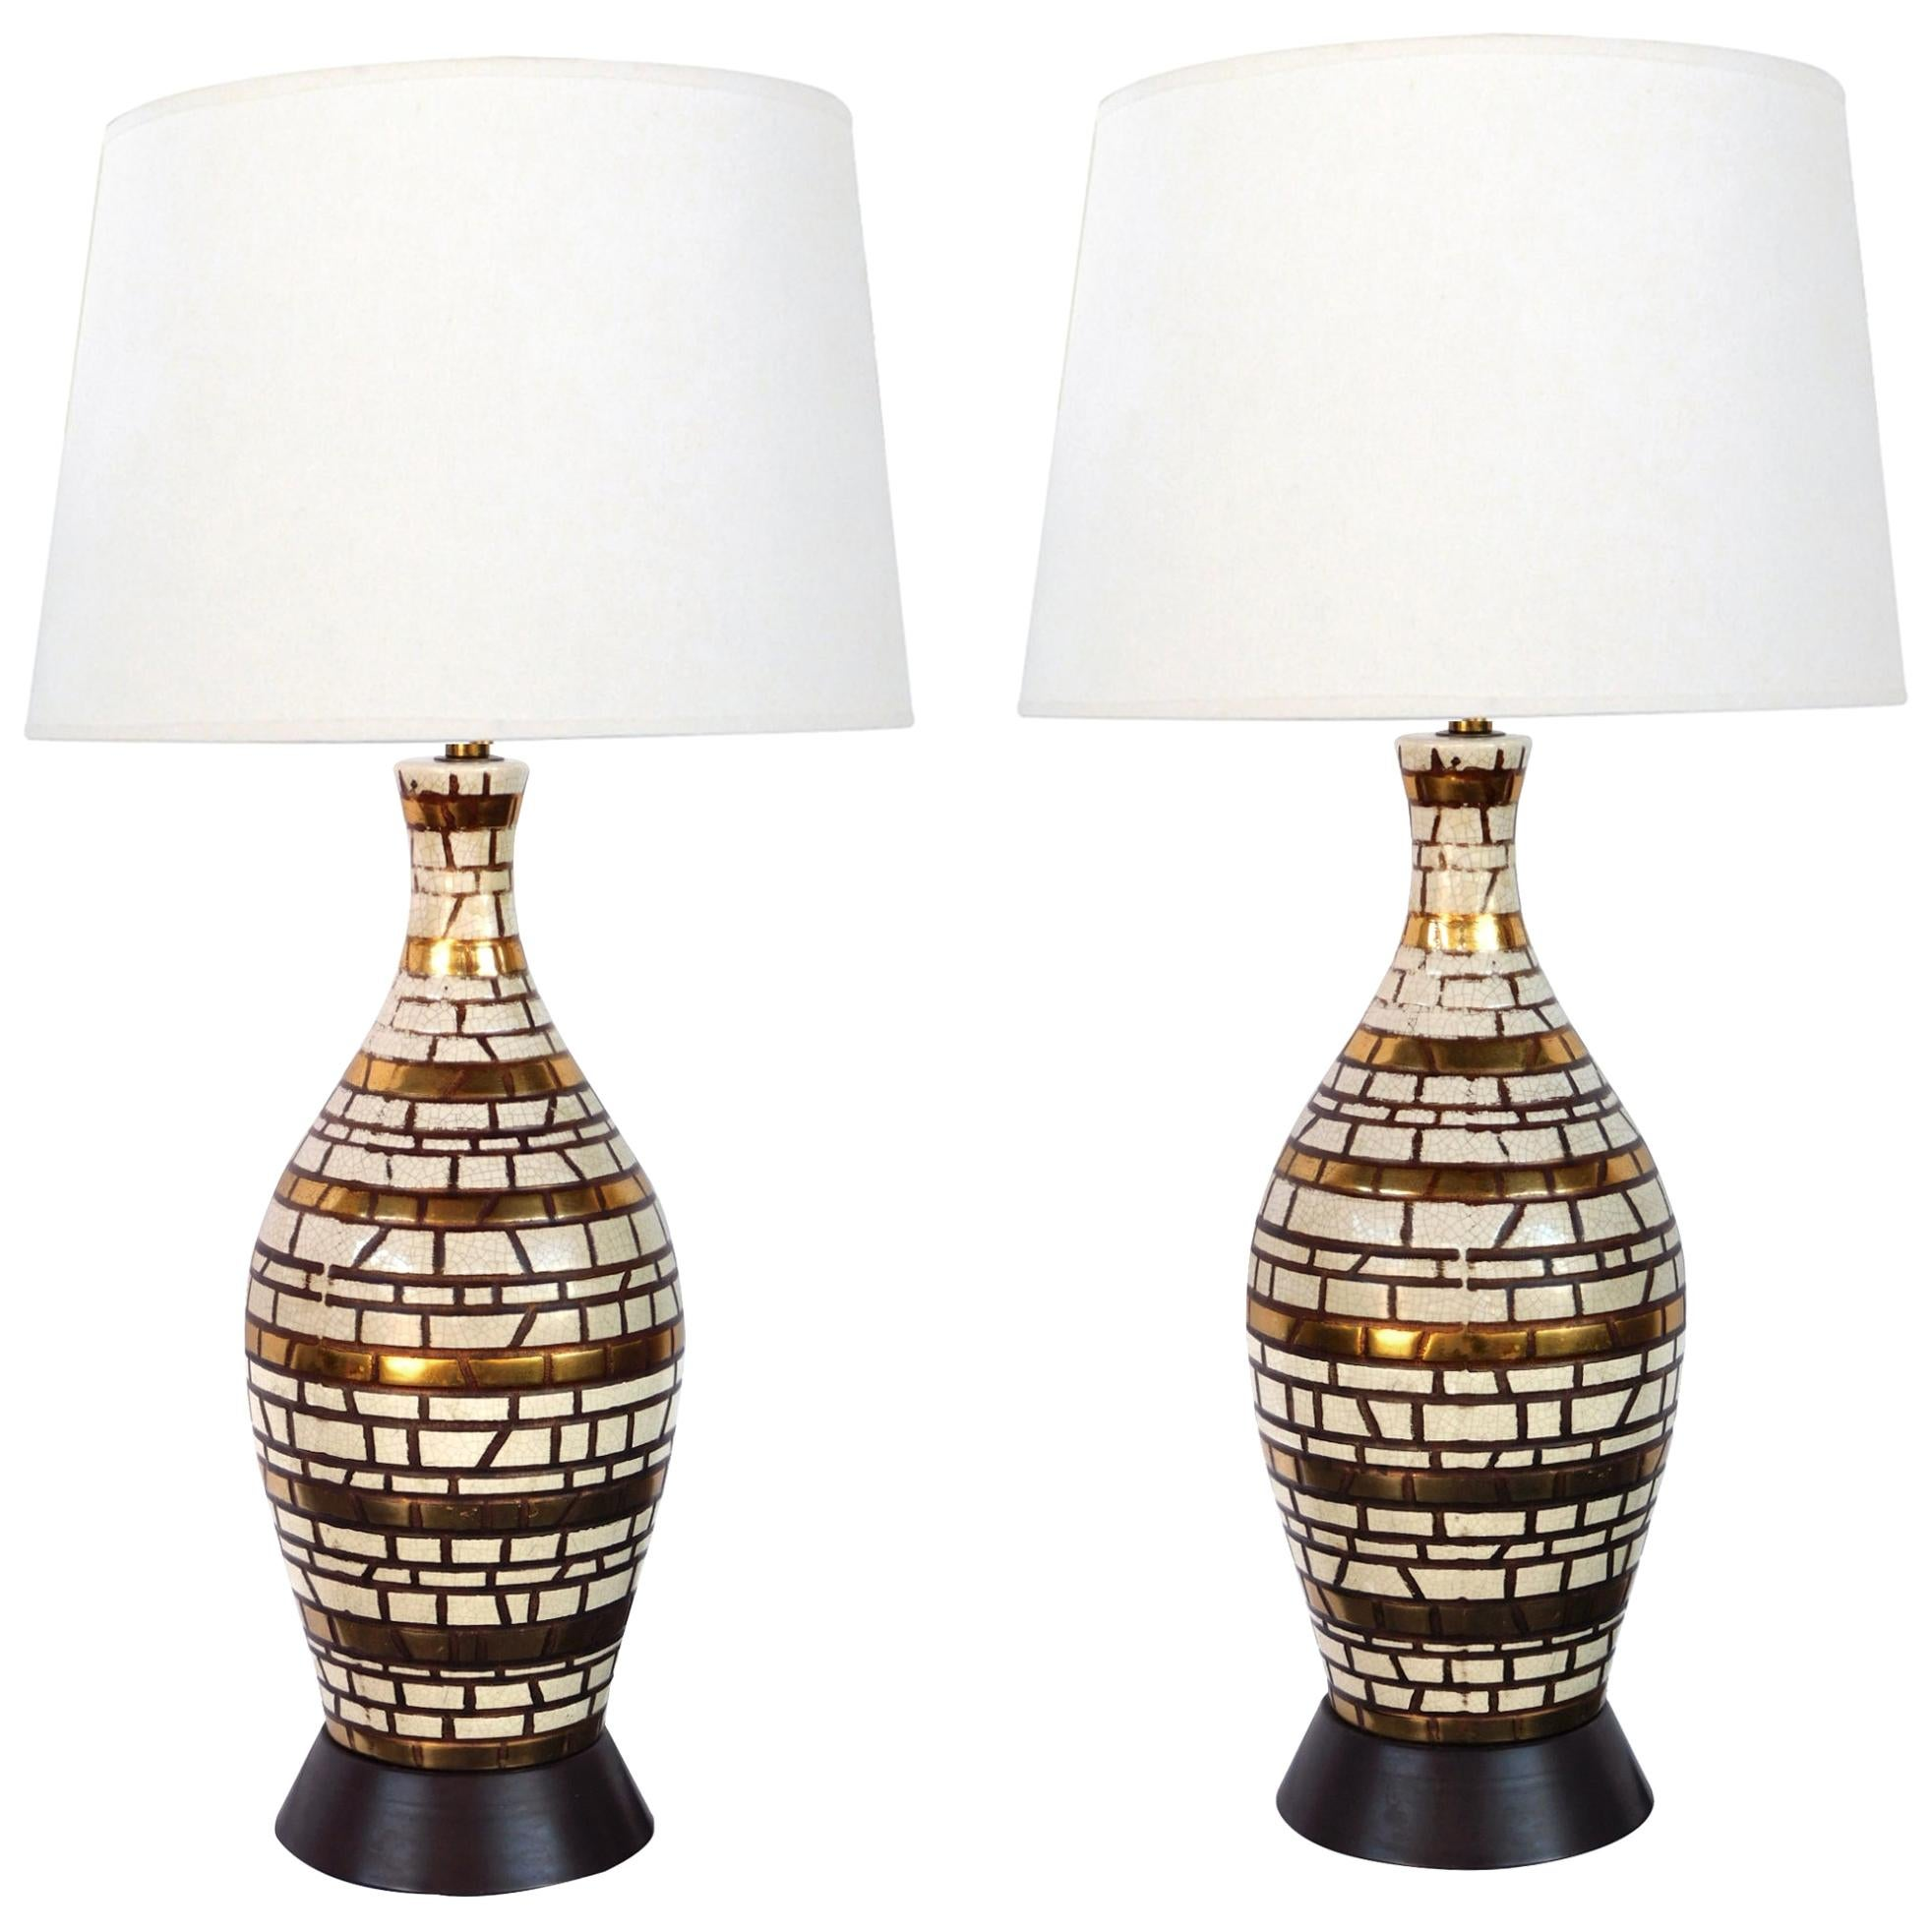 Midcentury Incised Geometric Bottle-Form Lamps with Gilt Highlights